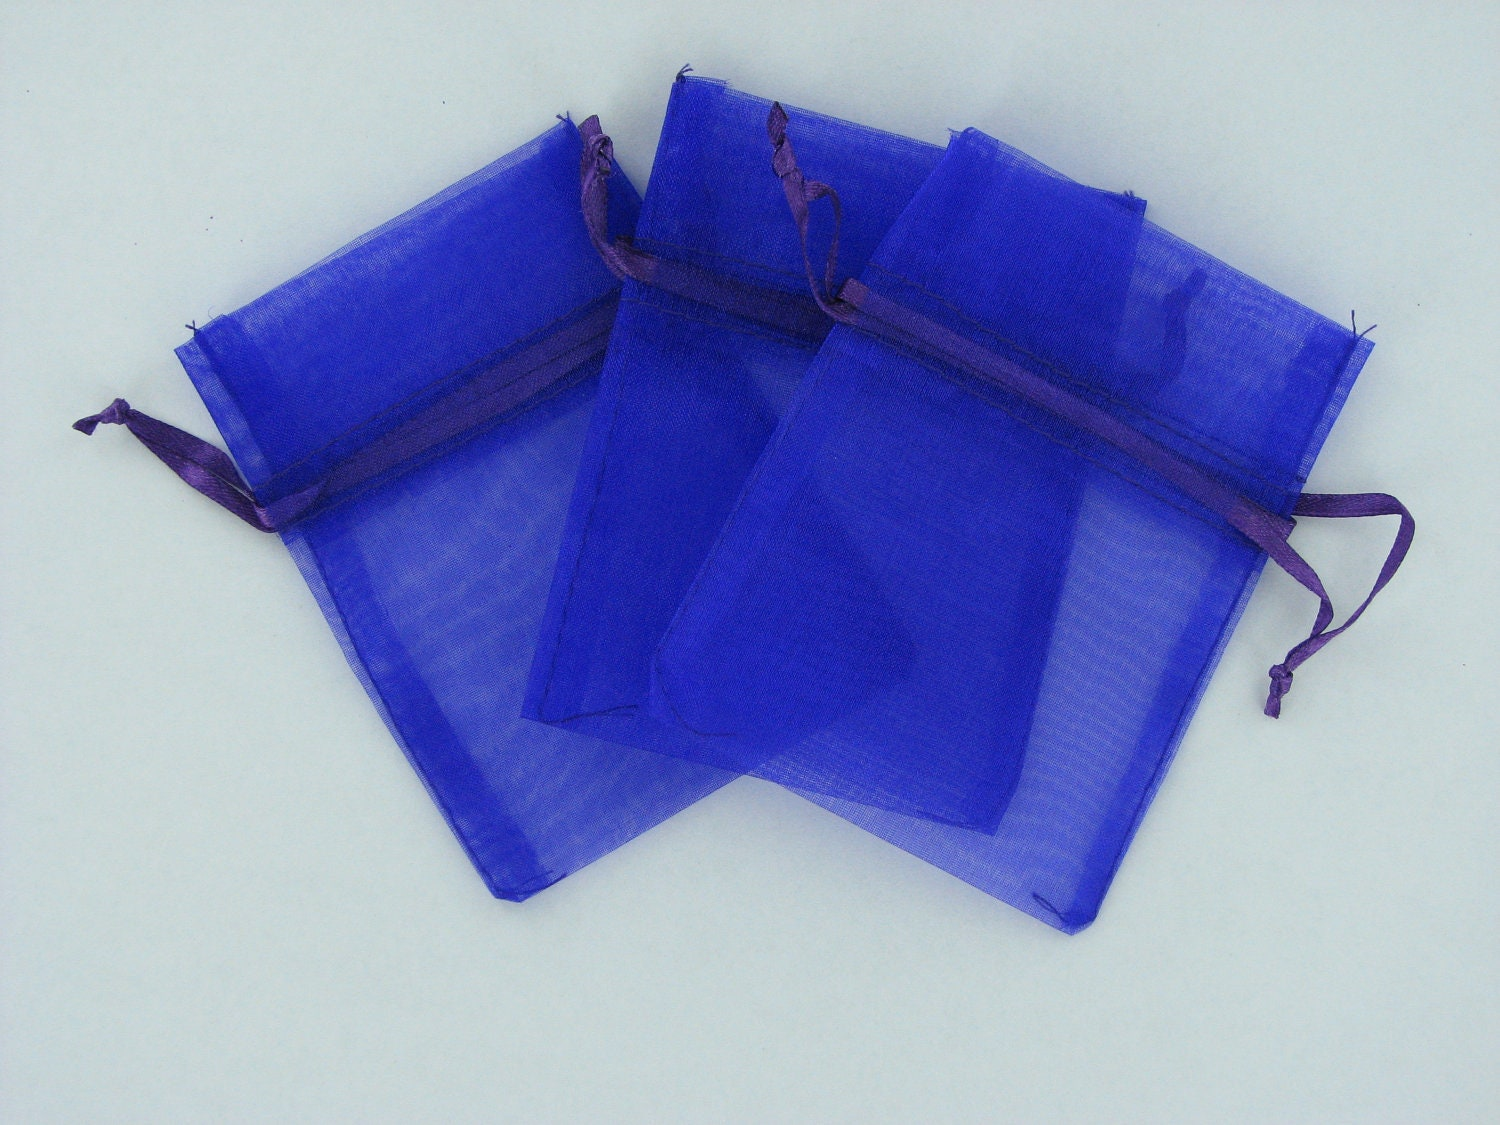 purple organza bags 3 inch x 4 inch 12 pieces